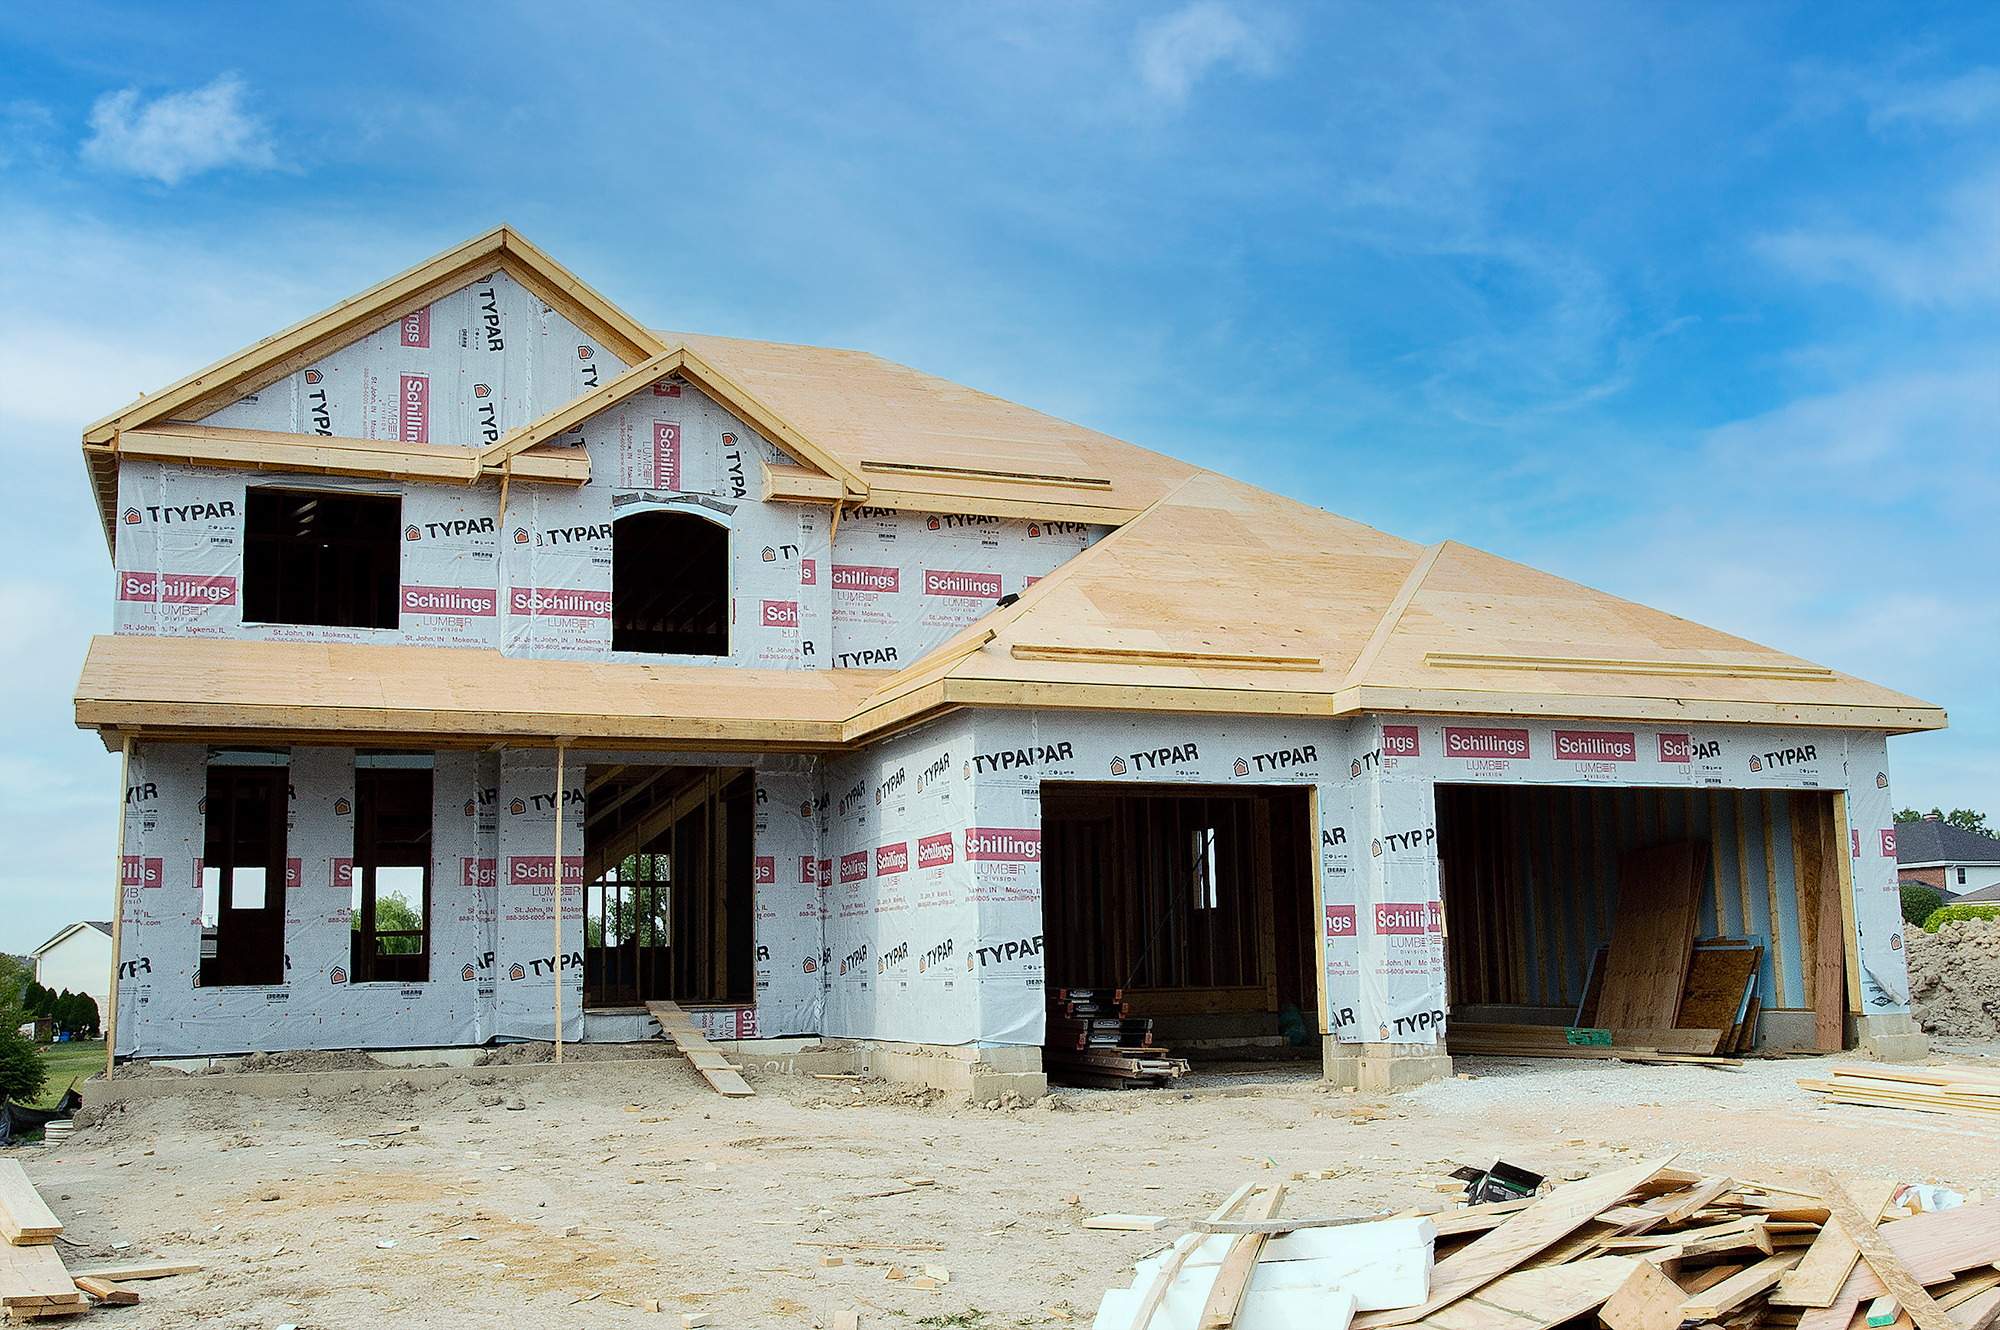 Construction of New Homes Is Rising. Here's Why.